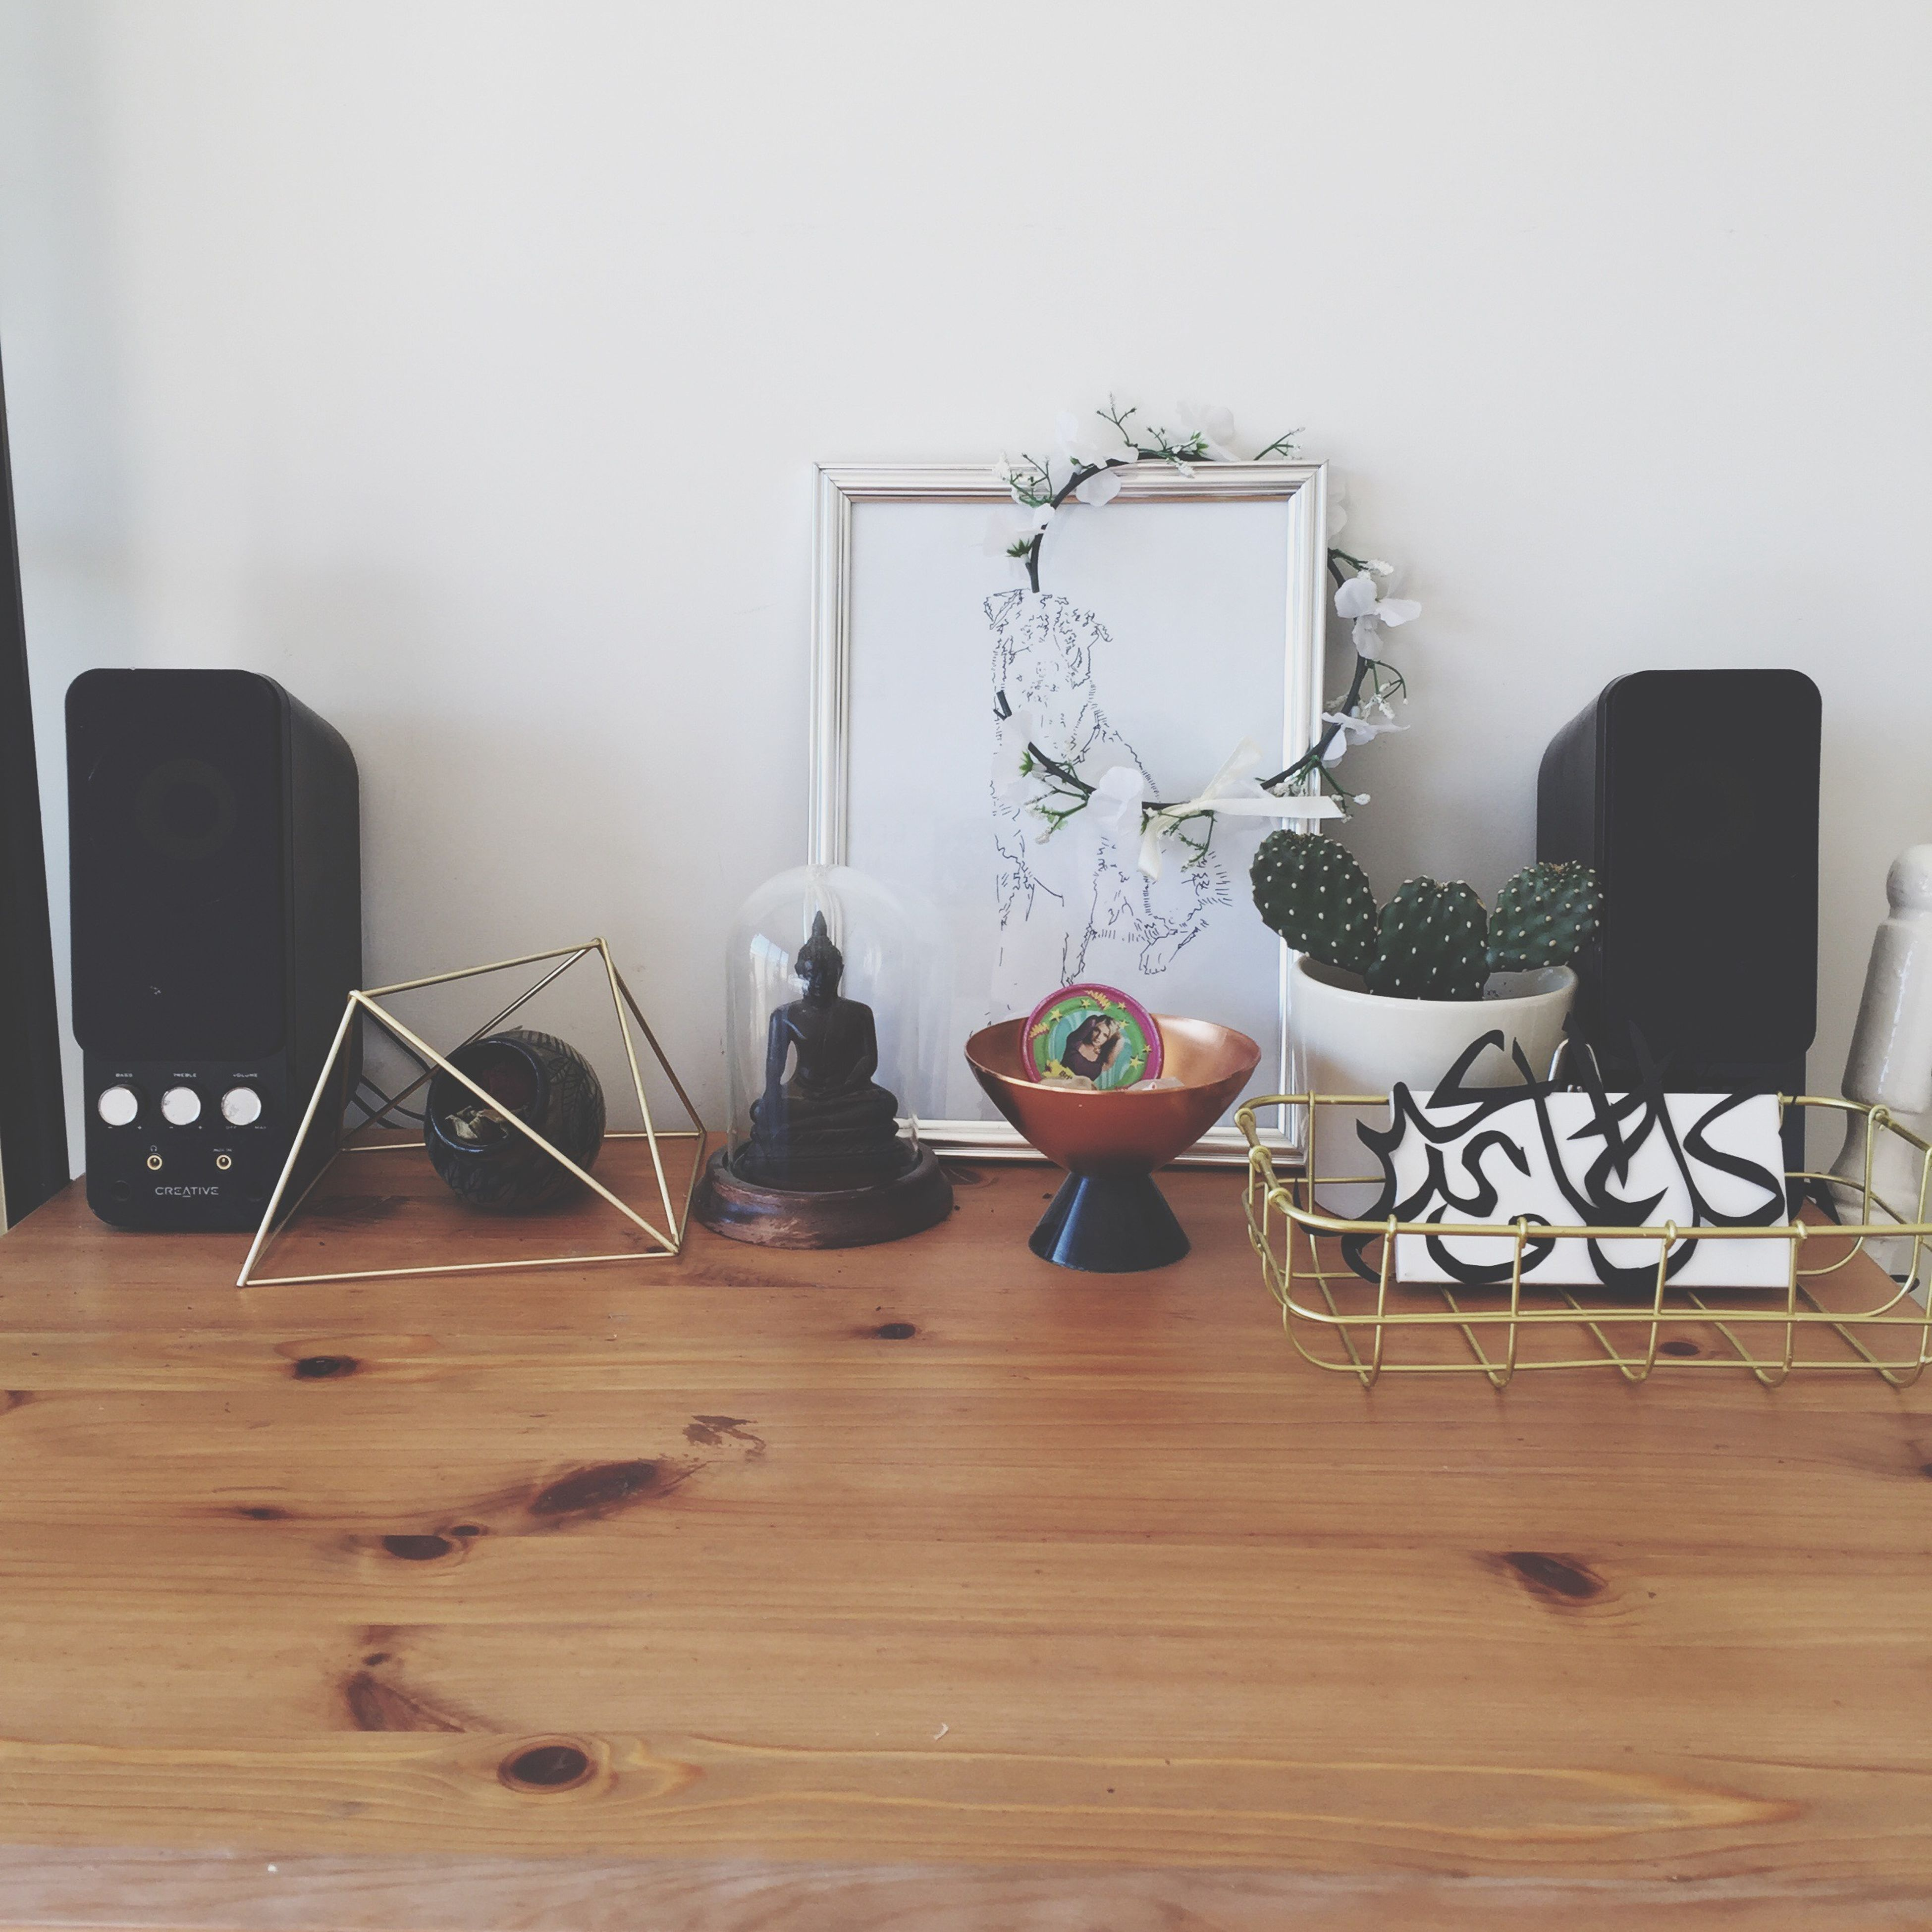 indoors, no people, chair, desk, desk lamp, home interior, day